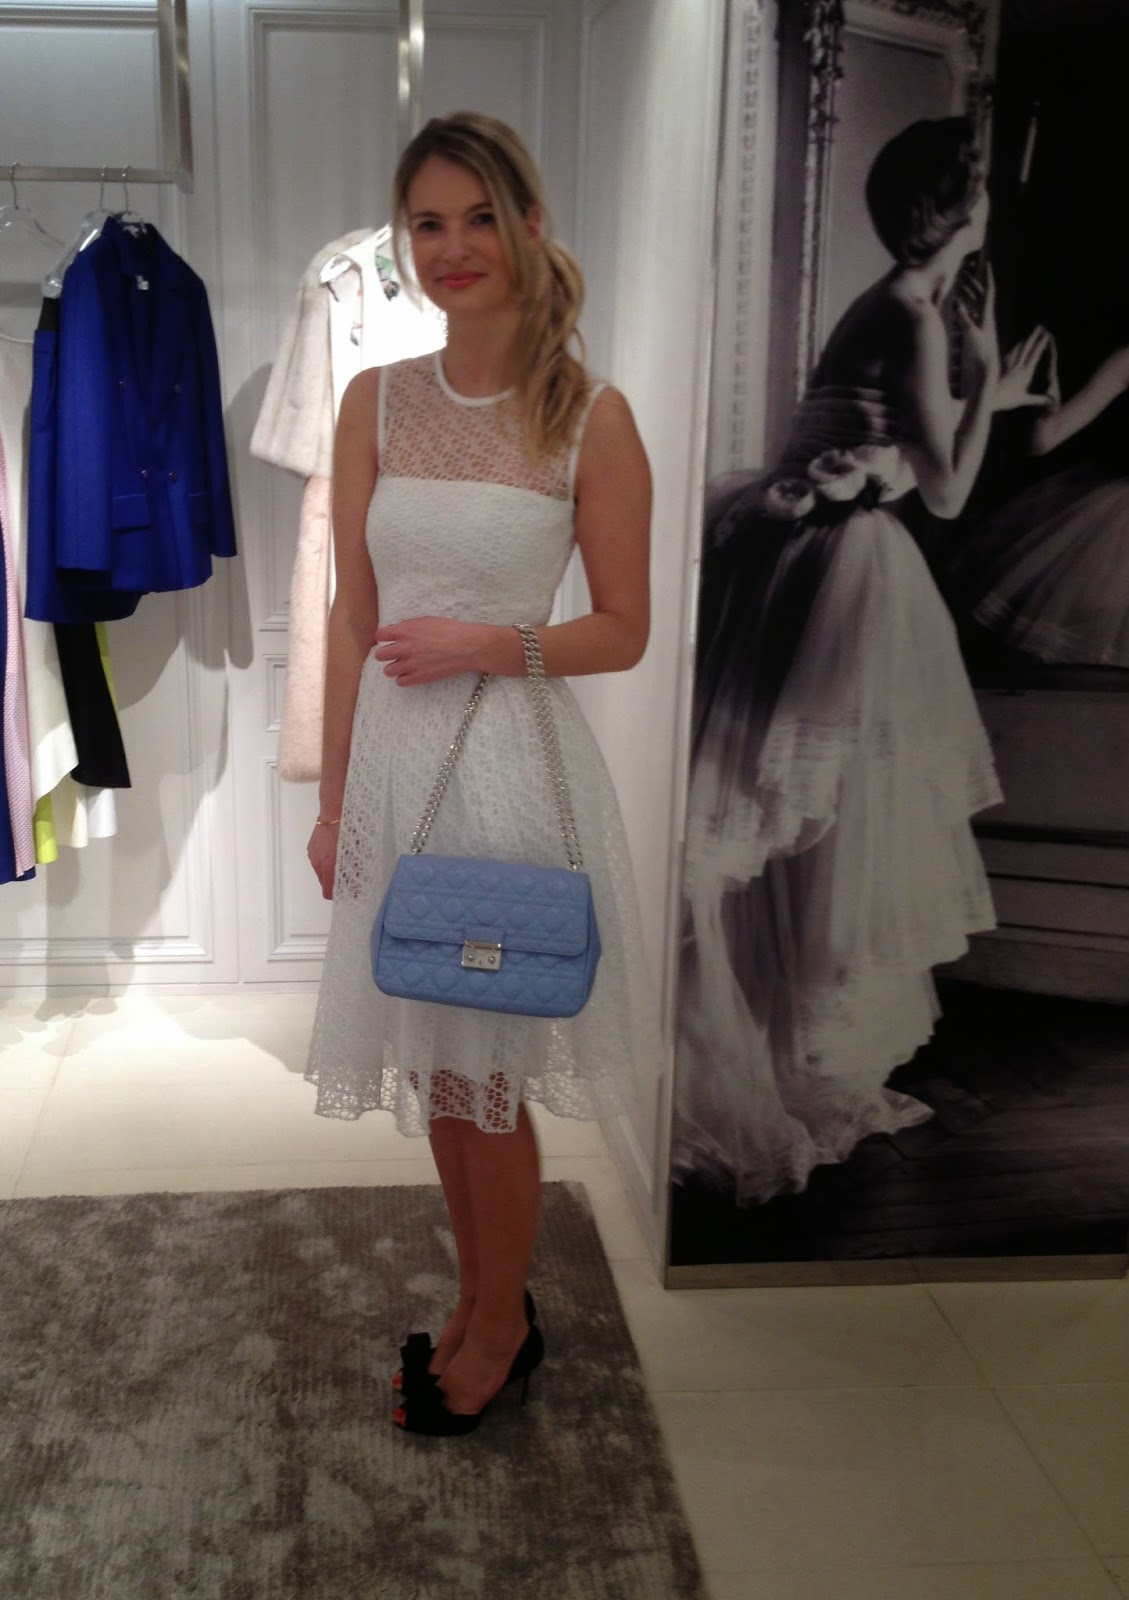 Dior, Dior harrods, harrods, dior bag, lady dior, dior ready to wear, dior look book, dior spring summer 2014, dior white dress, white dress, baby blue bag, blue bag, dior baby blue bag, dior heels, chrissabella, fashion blogger, lady jean bag, dior leady jean bag, modeblogger, london, london blogger